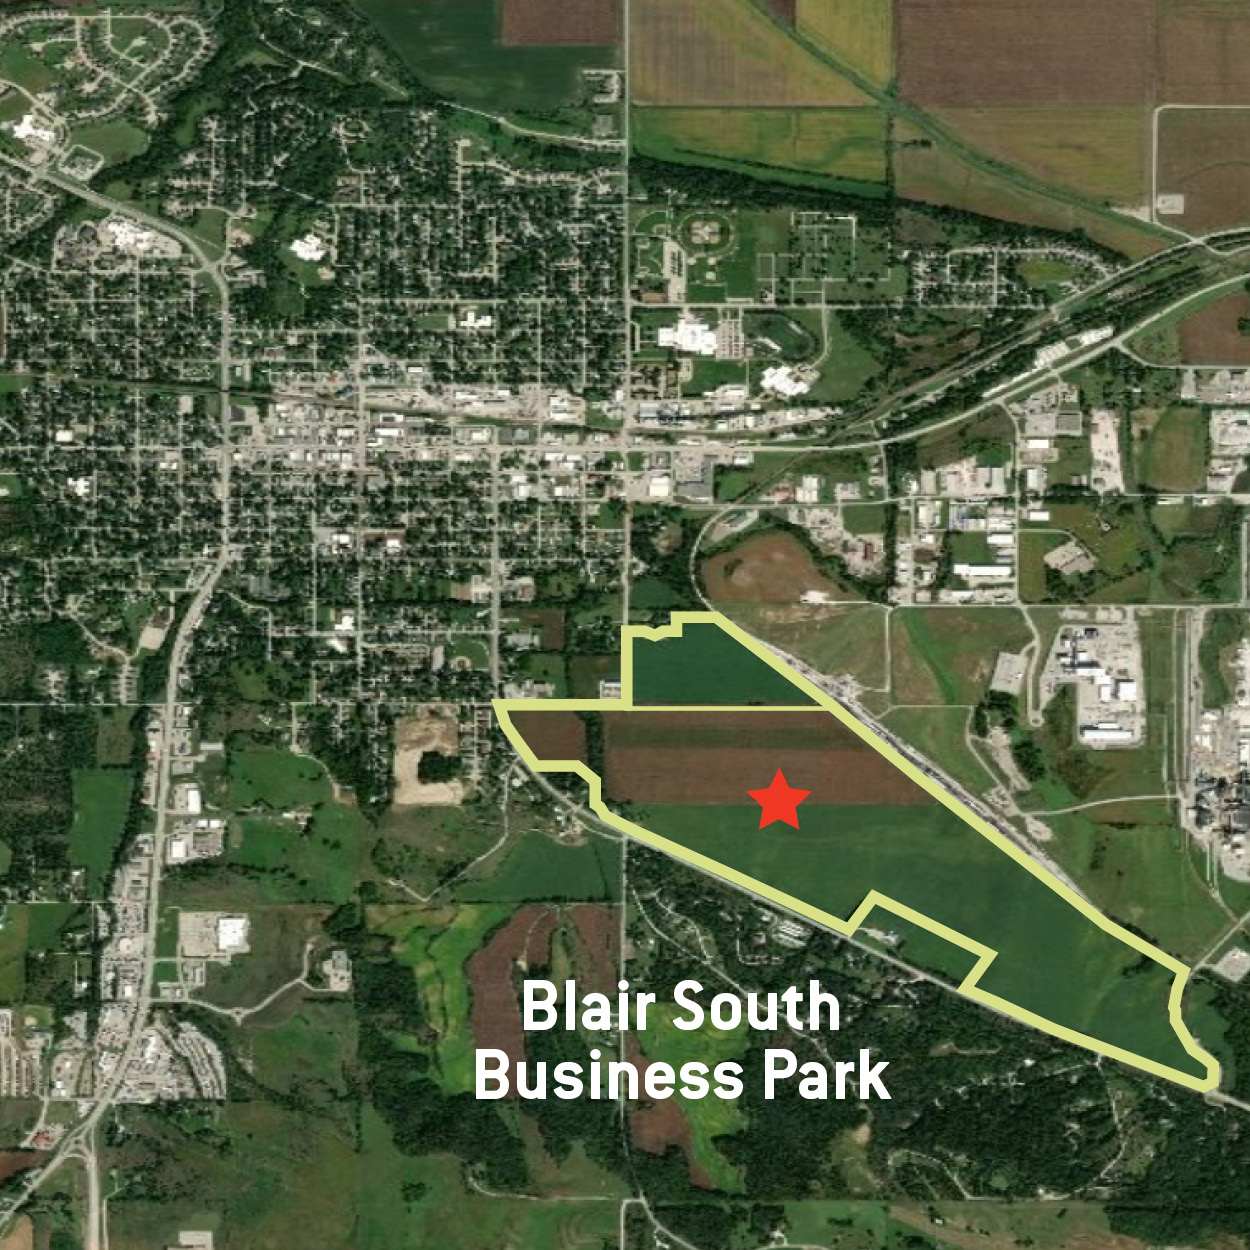 Blair South Business Park